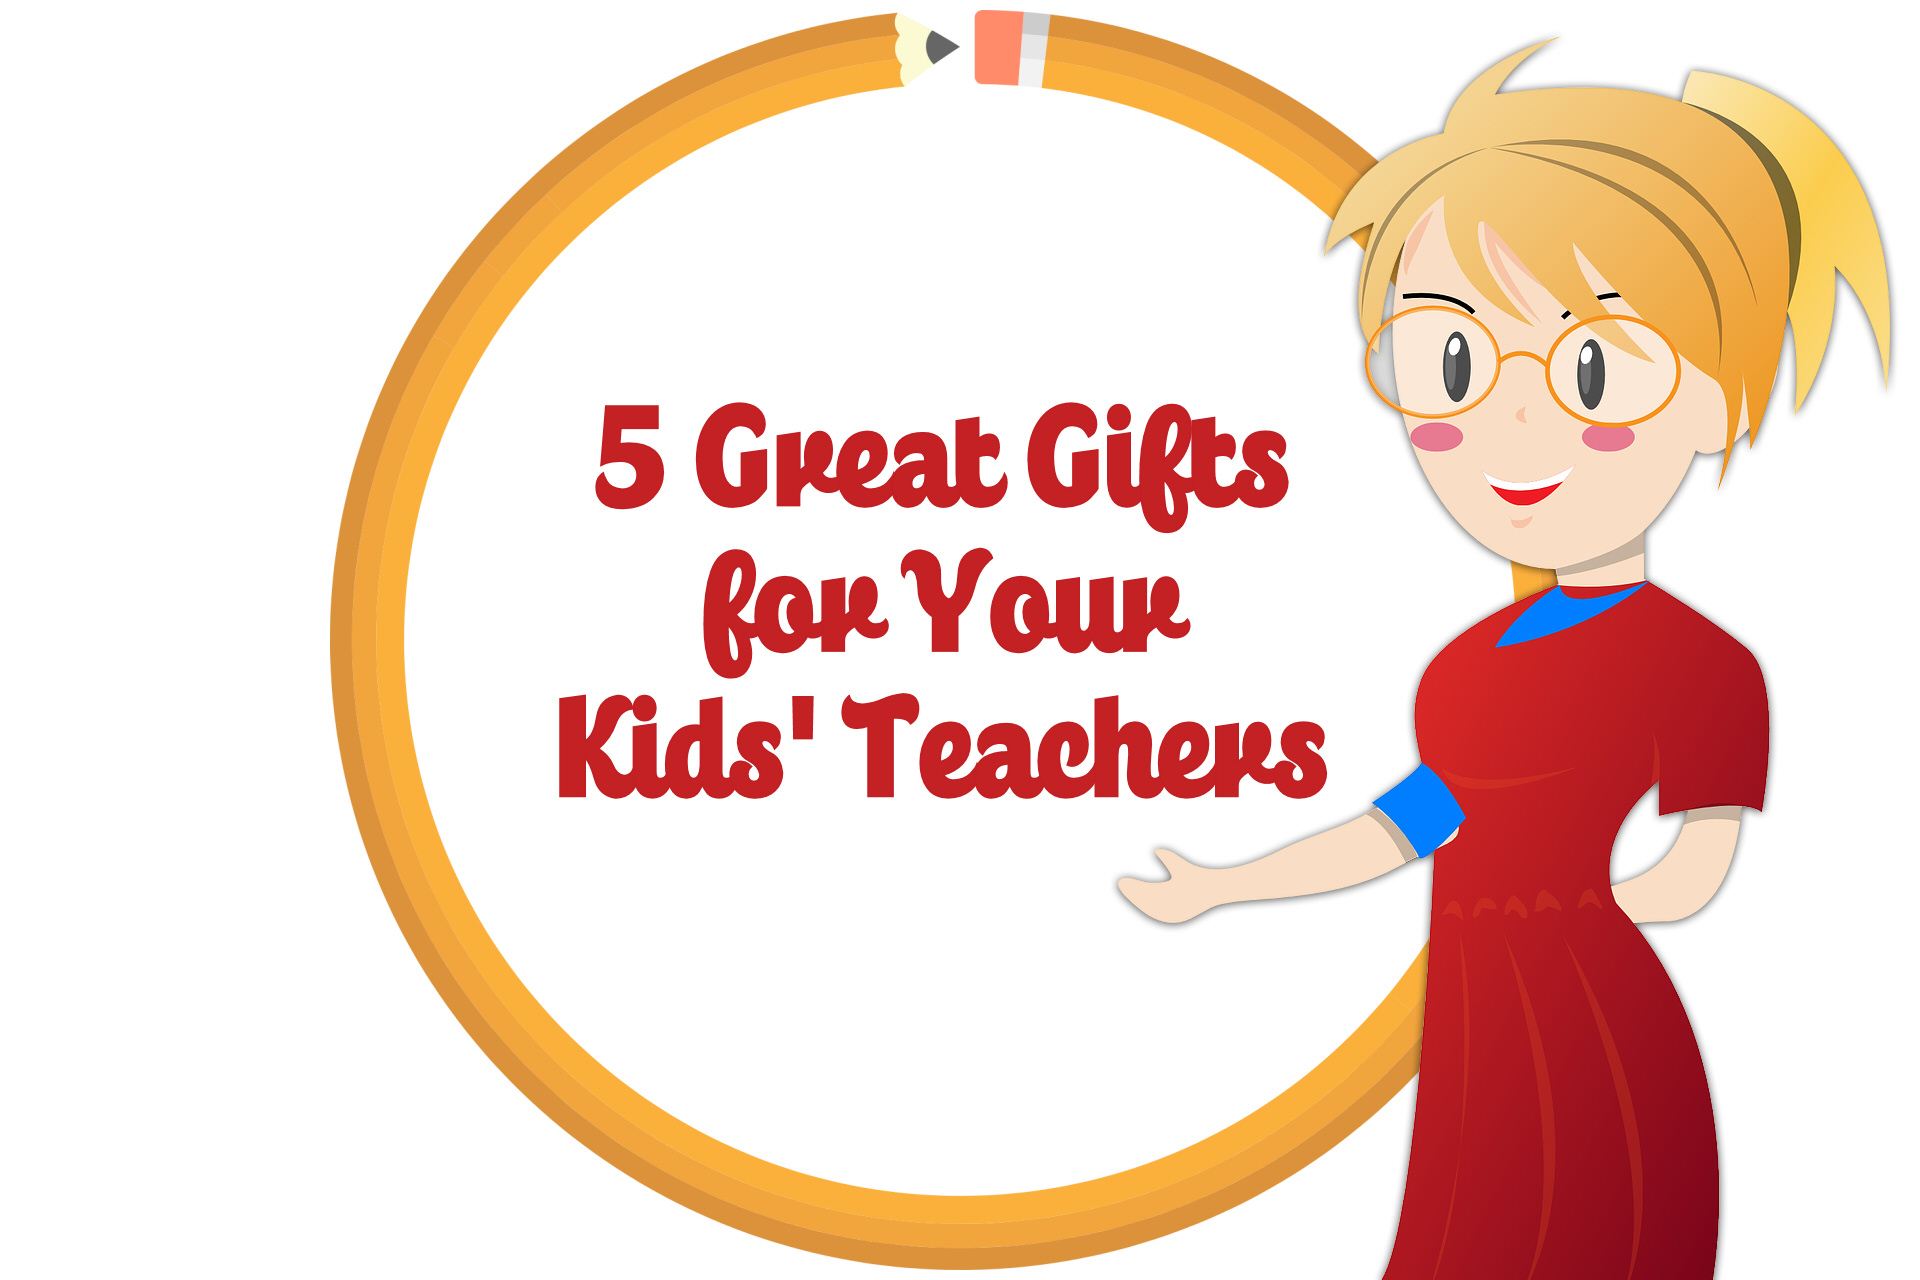 5 Great Gifts for Your Kids' Teachers